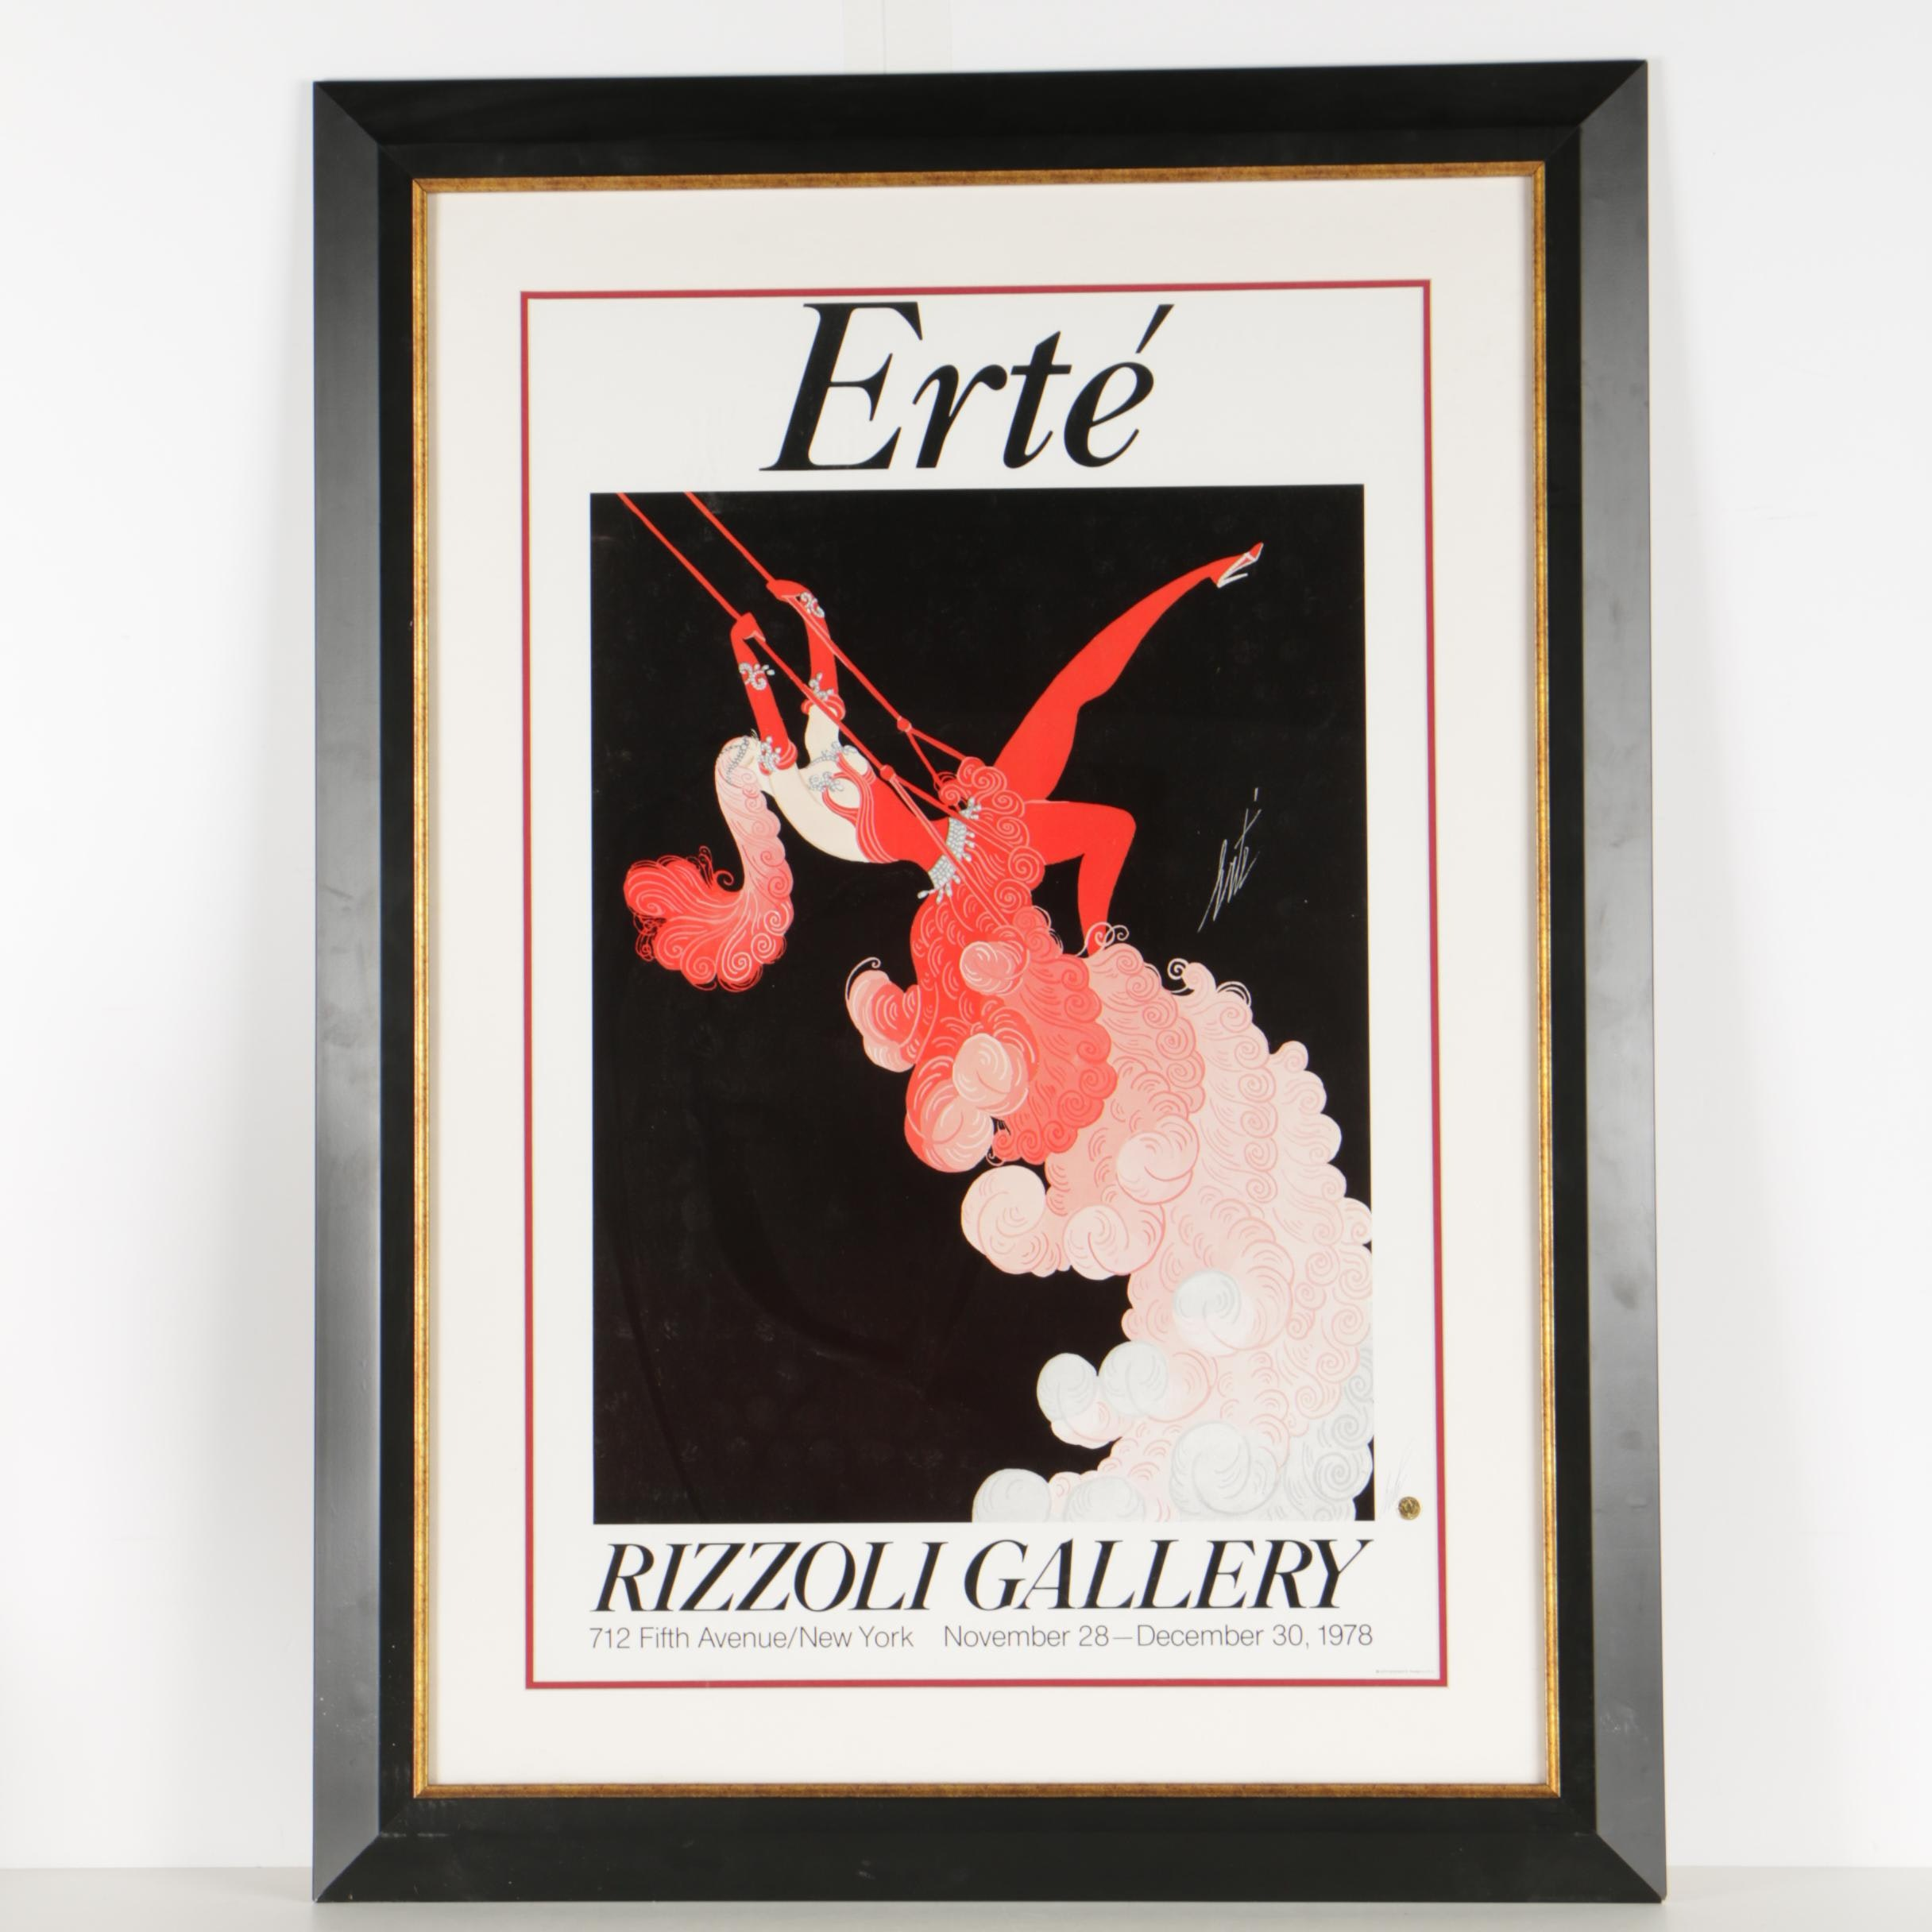 Érte Offset Lithograph Exhibition Poster for Rizzoli Gallery